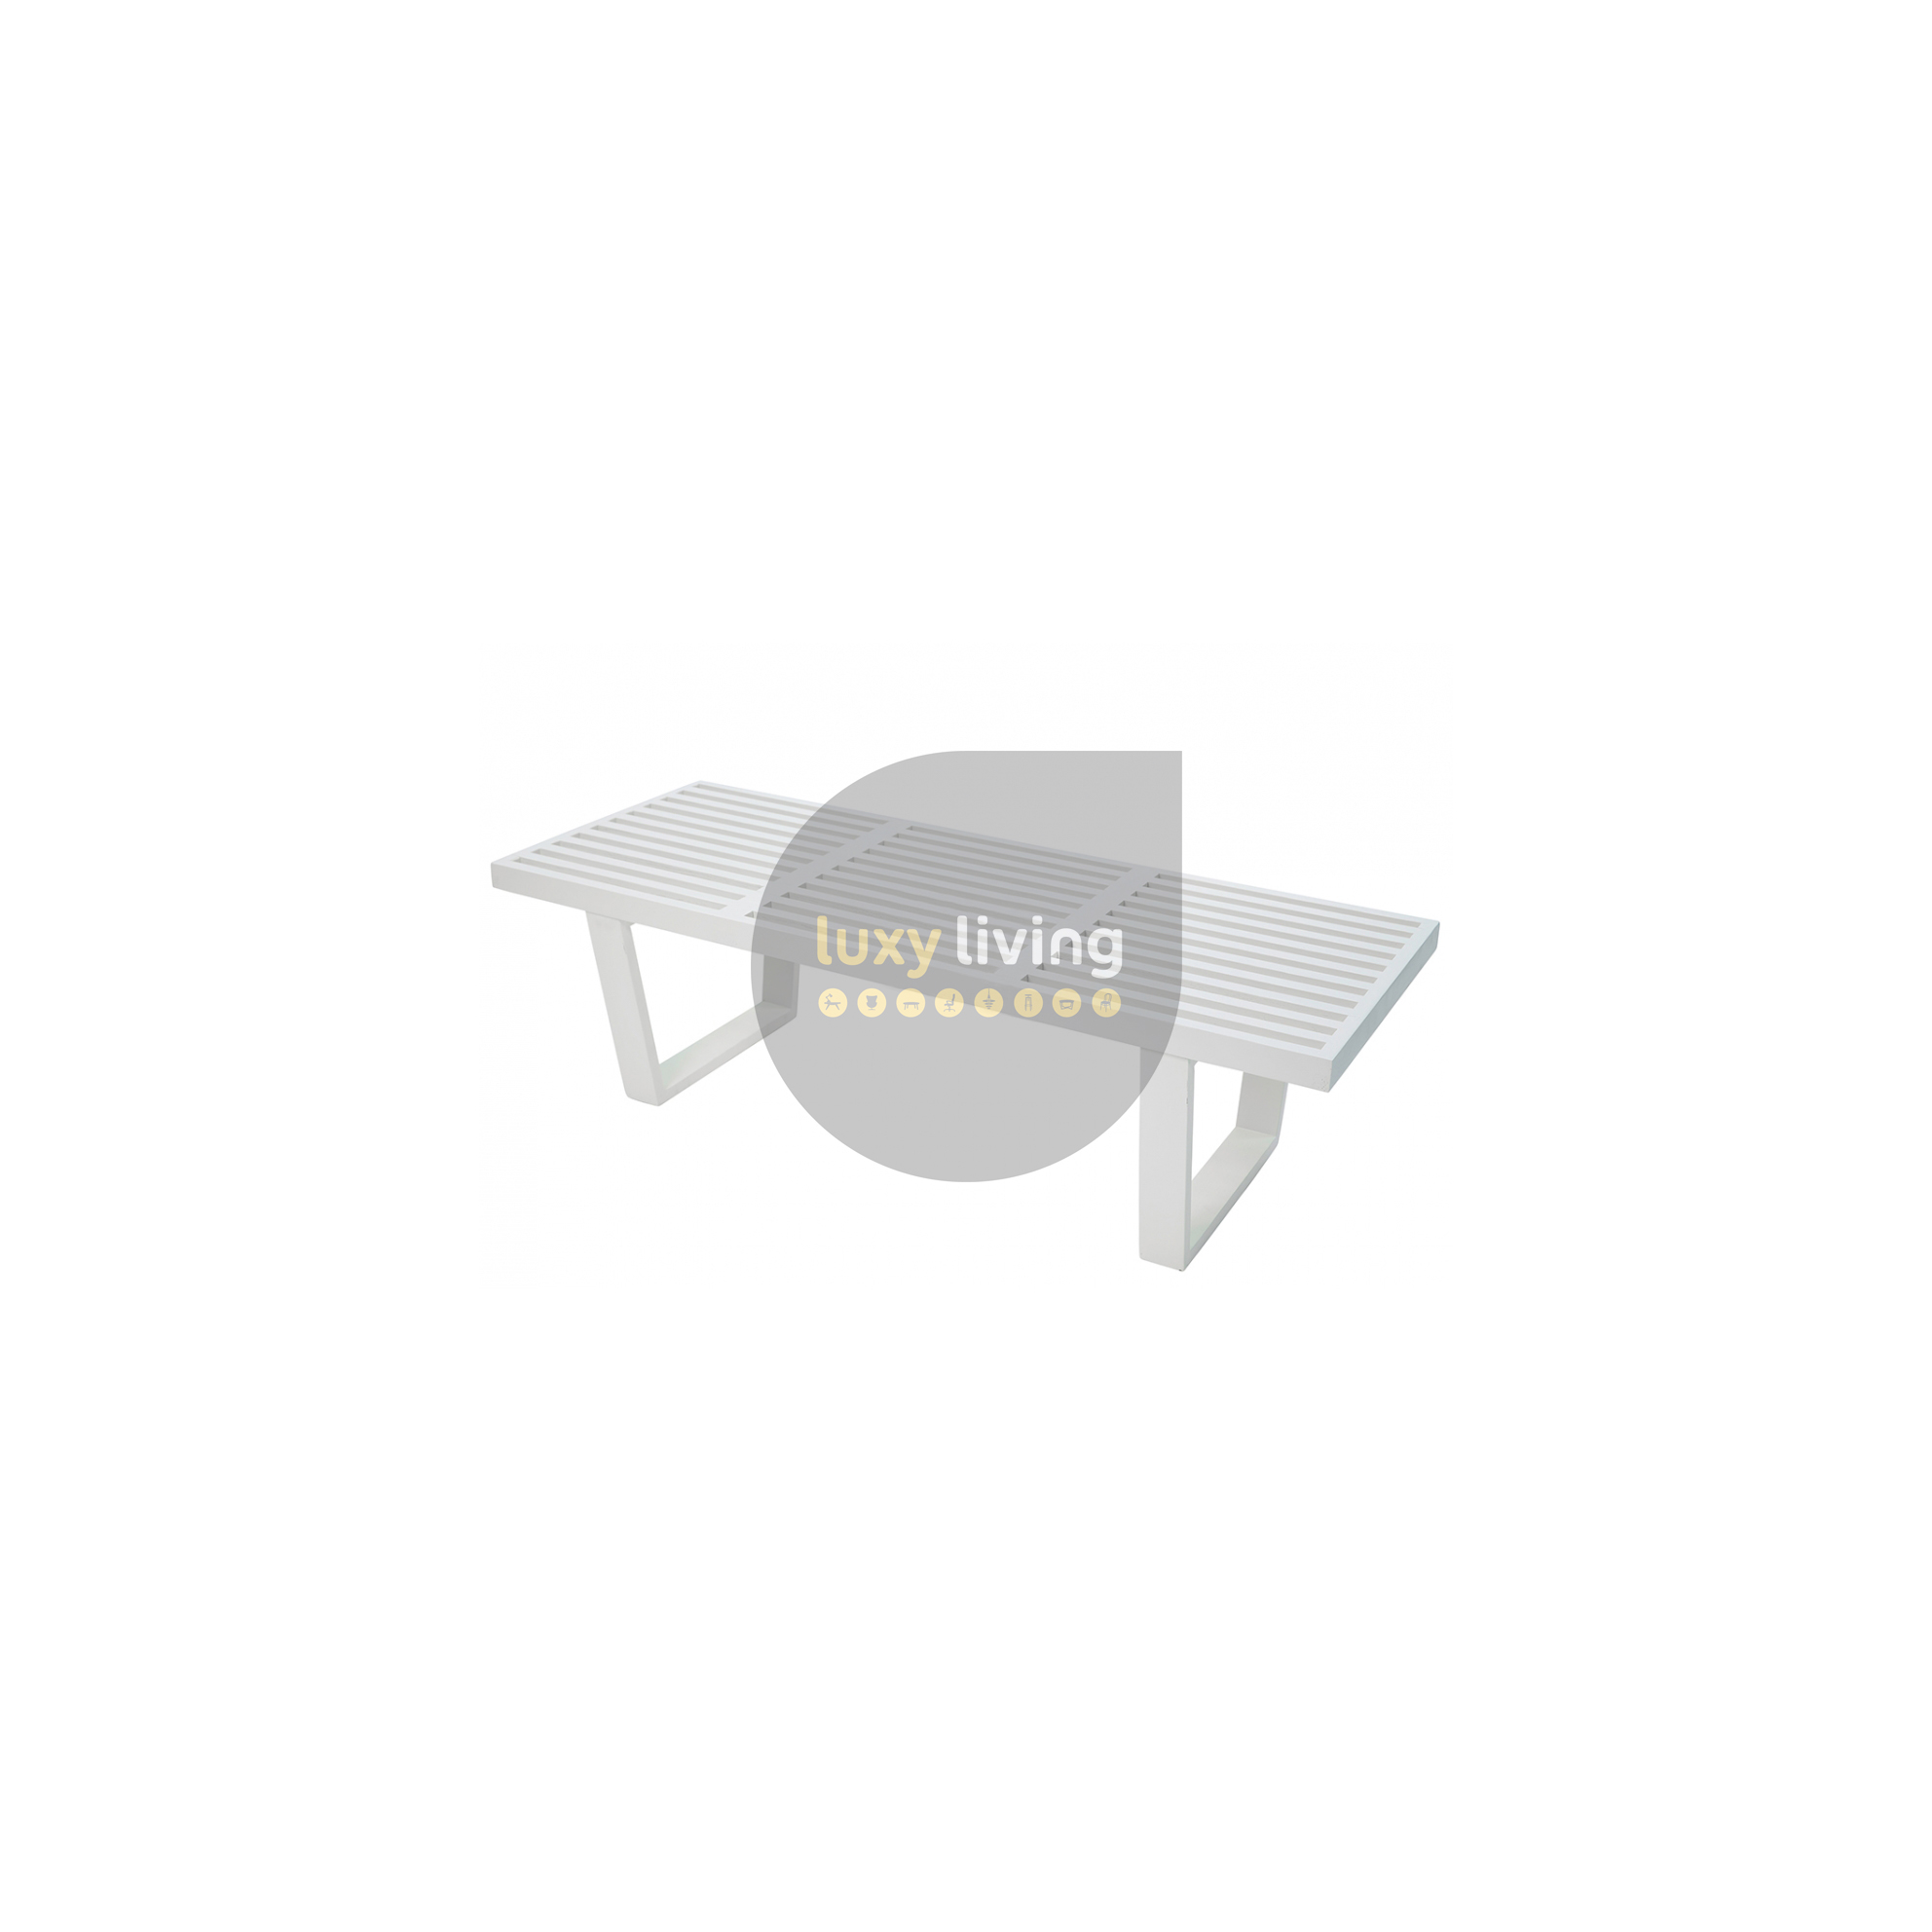 Phenomenal Replica George Nelson Platform Bench White 152Cm Gmtry Best Dining Table And Chair Ideas Images Gmtryco